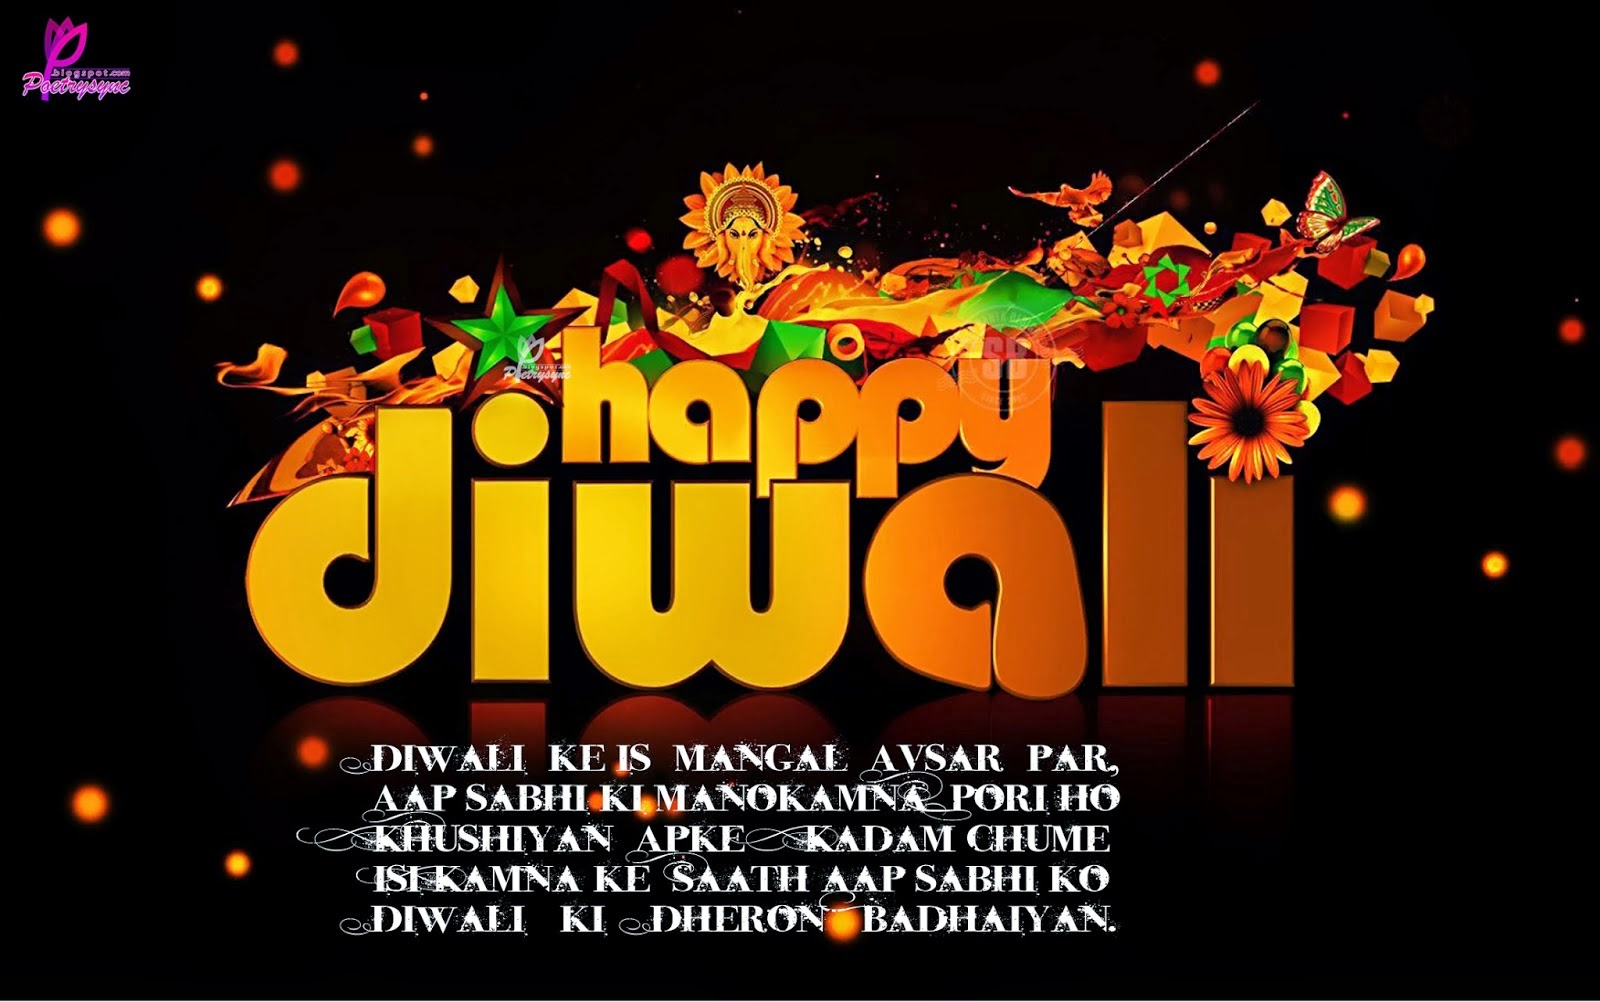 few lines of diwali in sanskrit List of hindu festivals the onset of the famous diwali marks the beginning of lighting 'diyas', beautifying homes deepavali which means row of lights/lamps in kannada and telugu and marathi and sanskrit is called diwali in north india.